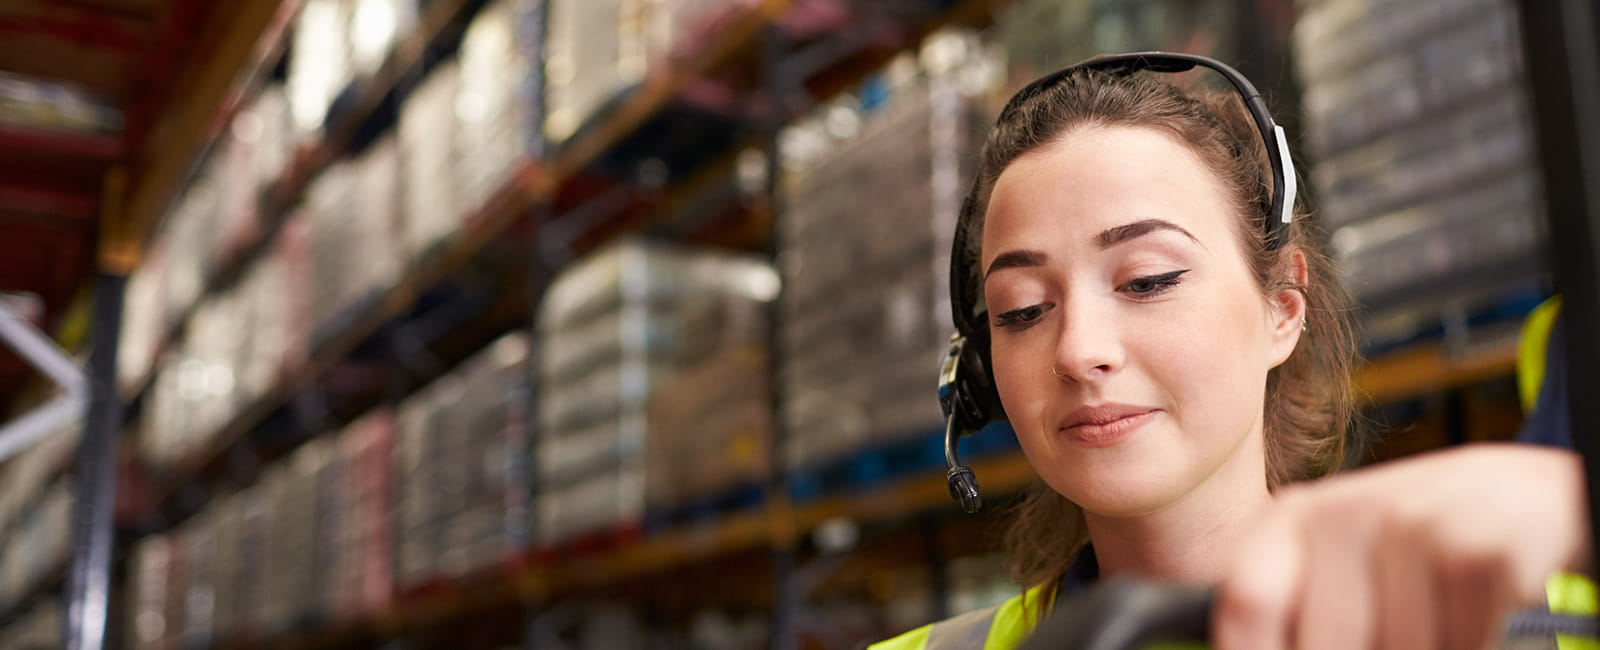 Wide shot of woman with headset working in warehouse